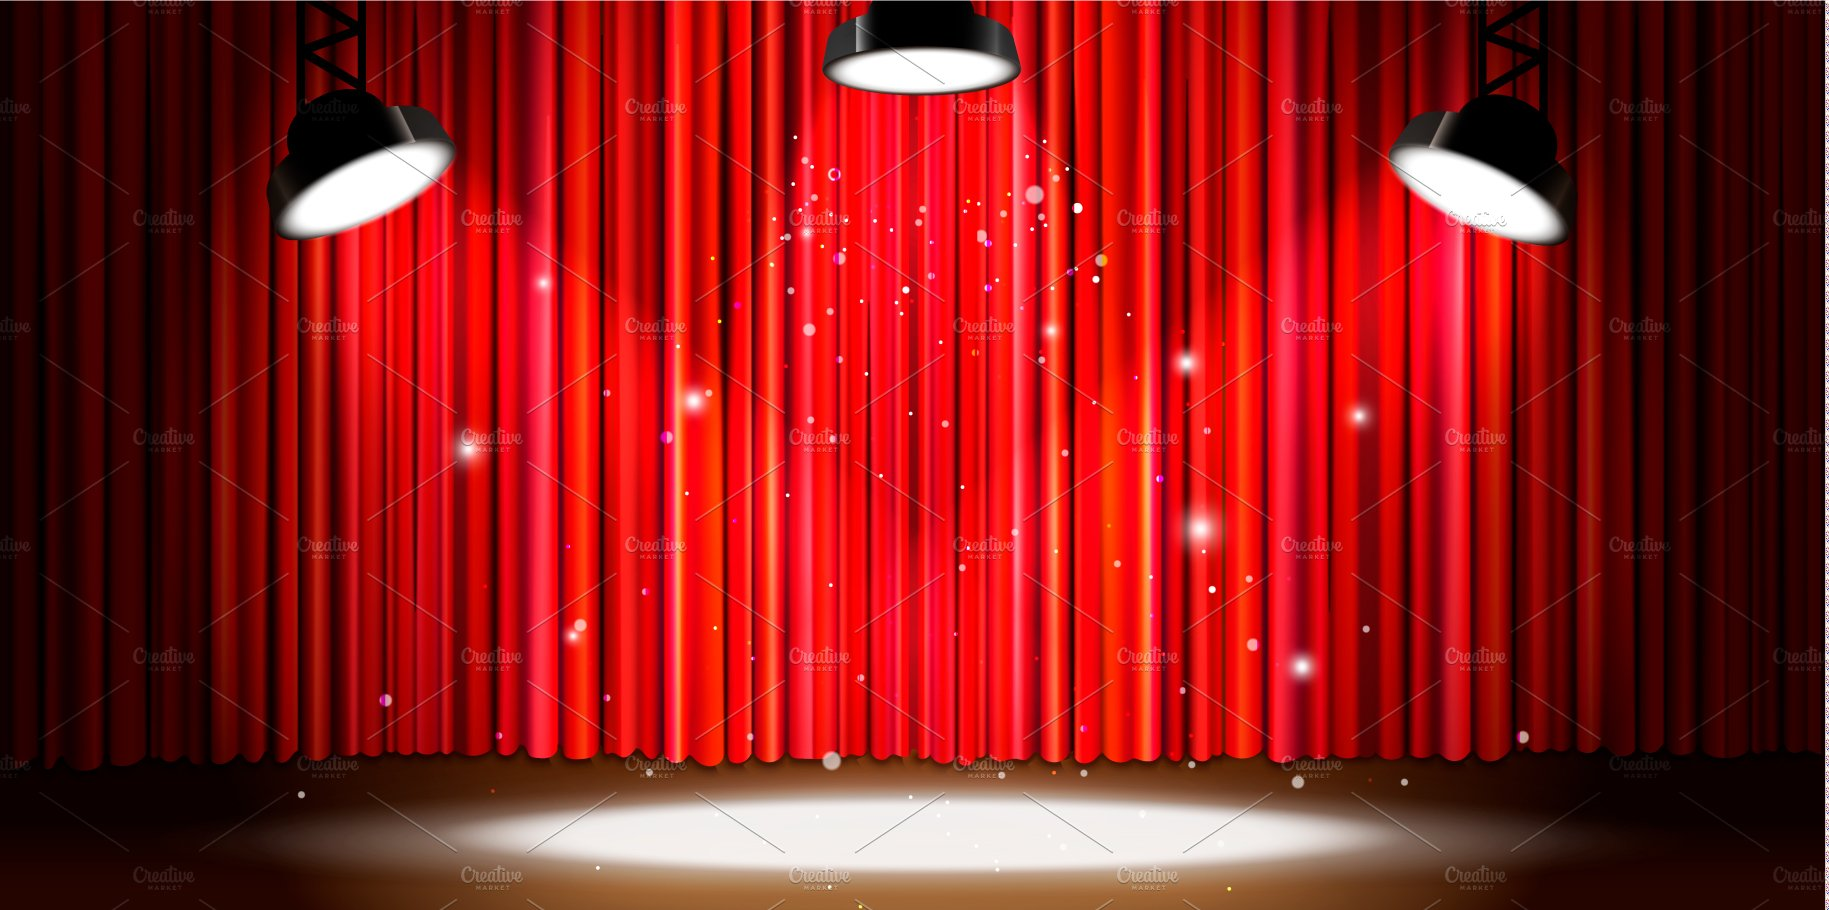 Red Curtain With Bright Spotlight Illustrations